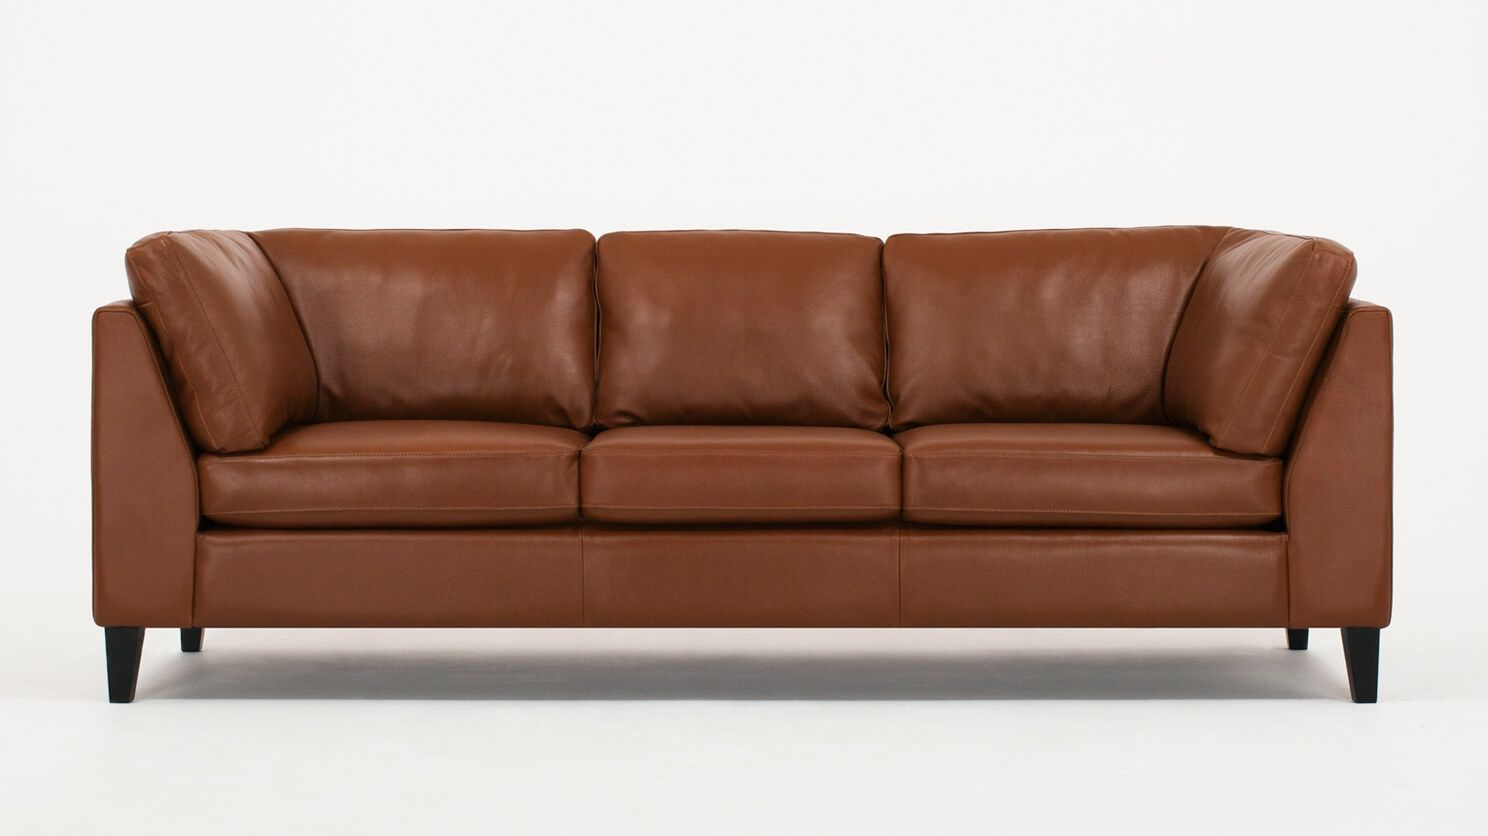 The Salema S Laid Back Design Encourages The Whole Family To Relax This Highly Customizable And Versatile Collection Featu Leather Sofa Tan Leather Sofas Sofa